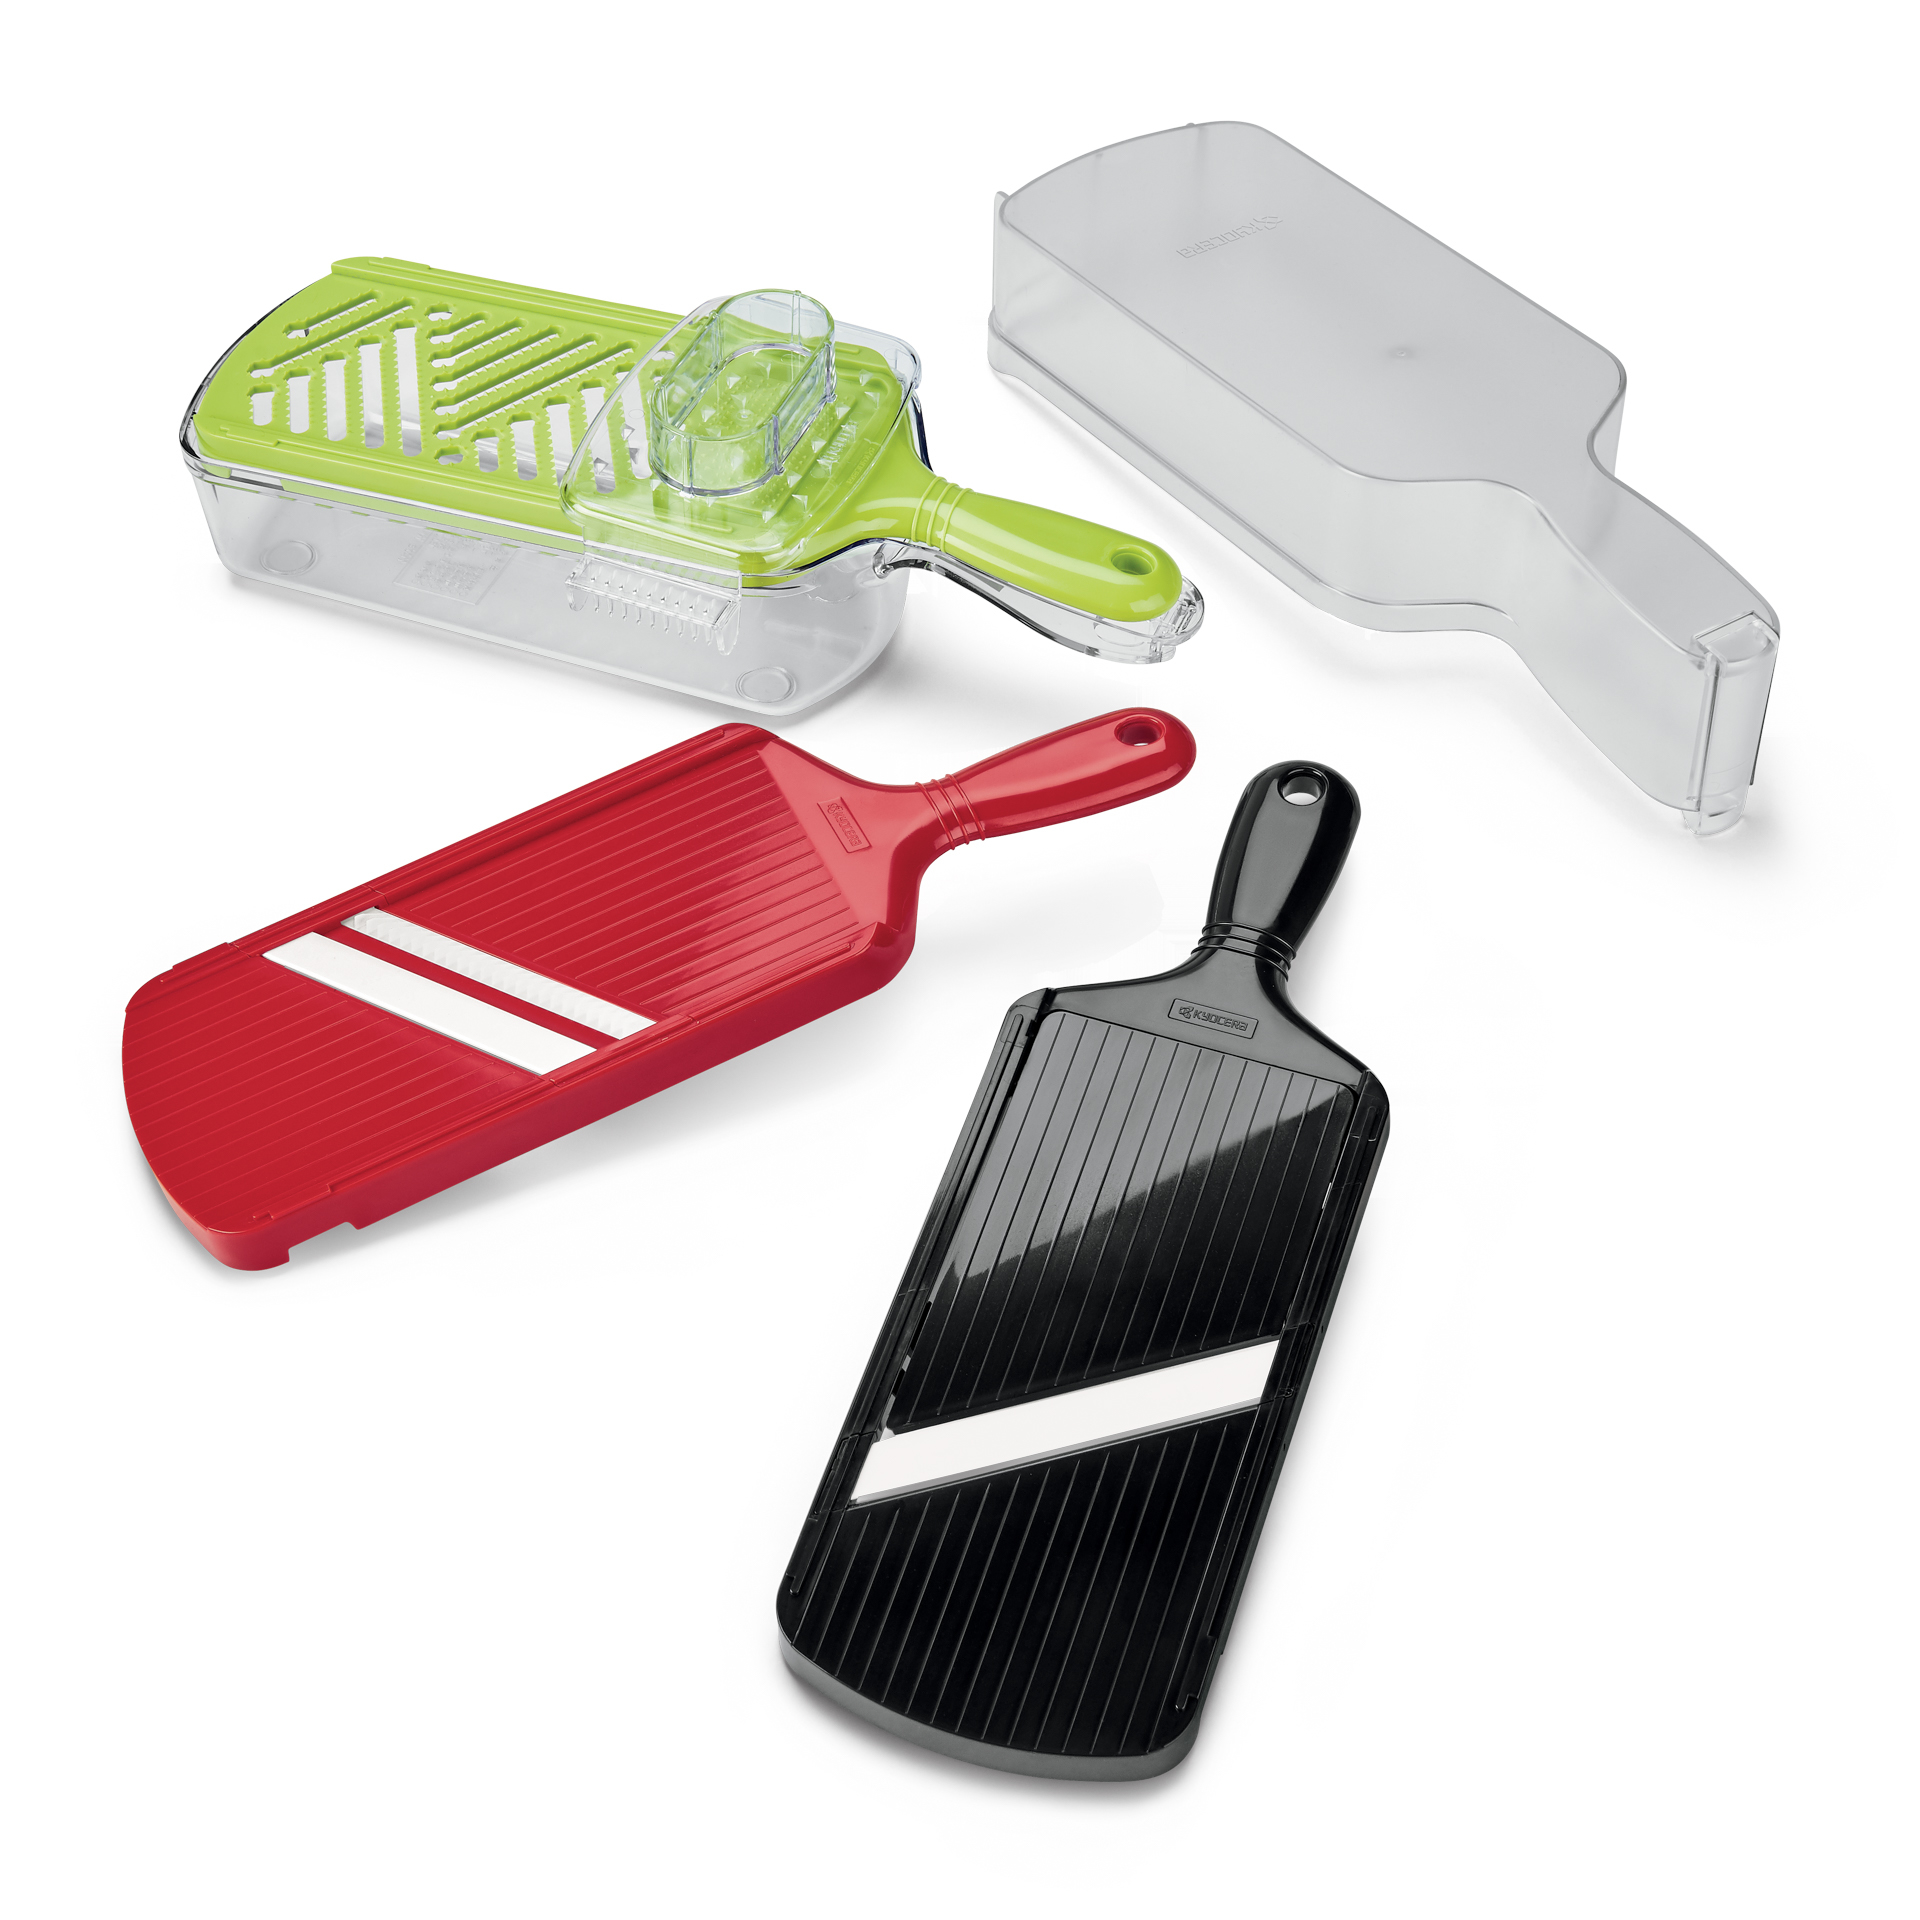 Picture of Multi-Slicer Set: Adjustable Mandoline Slicer, Julienne Slicer, Grater and Storage Container